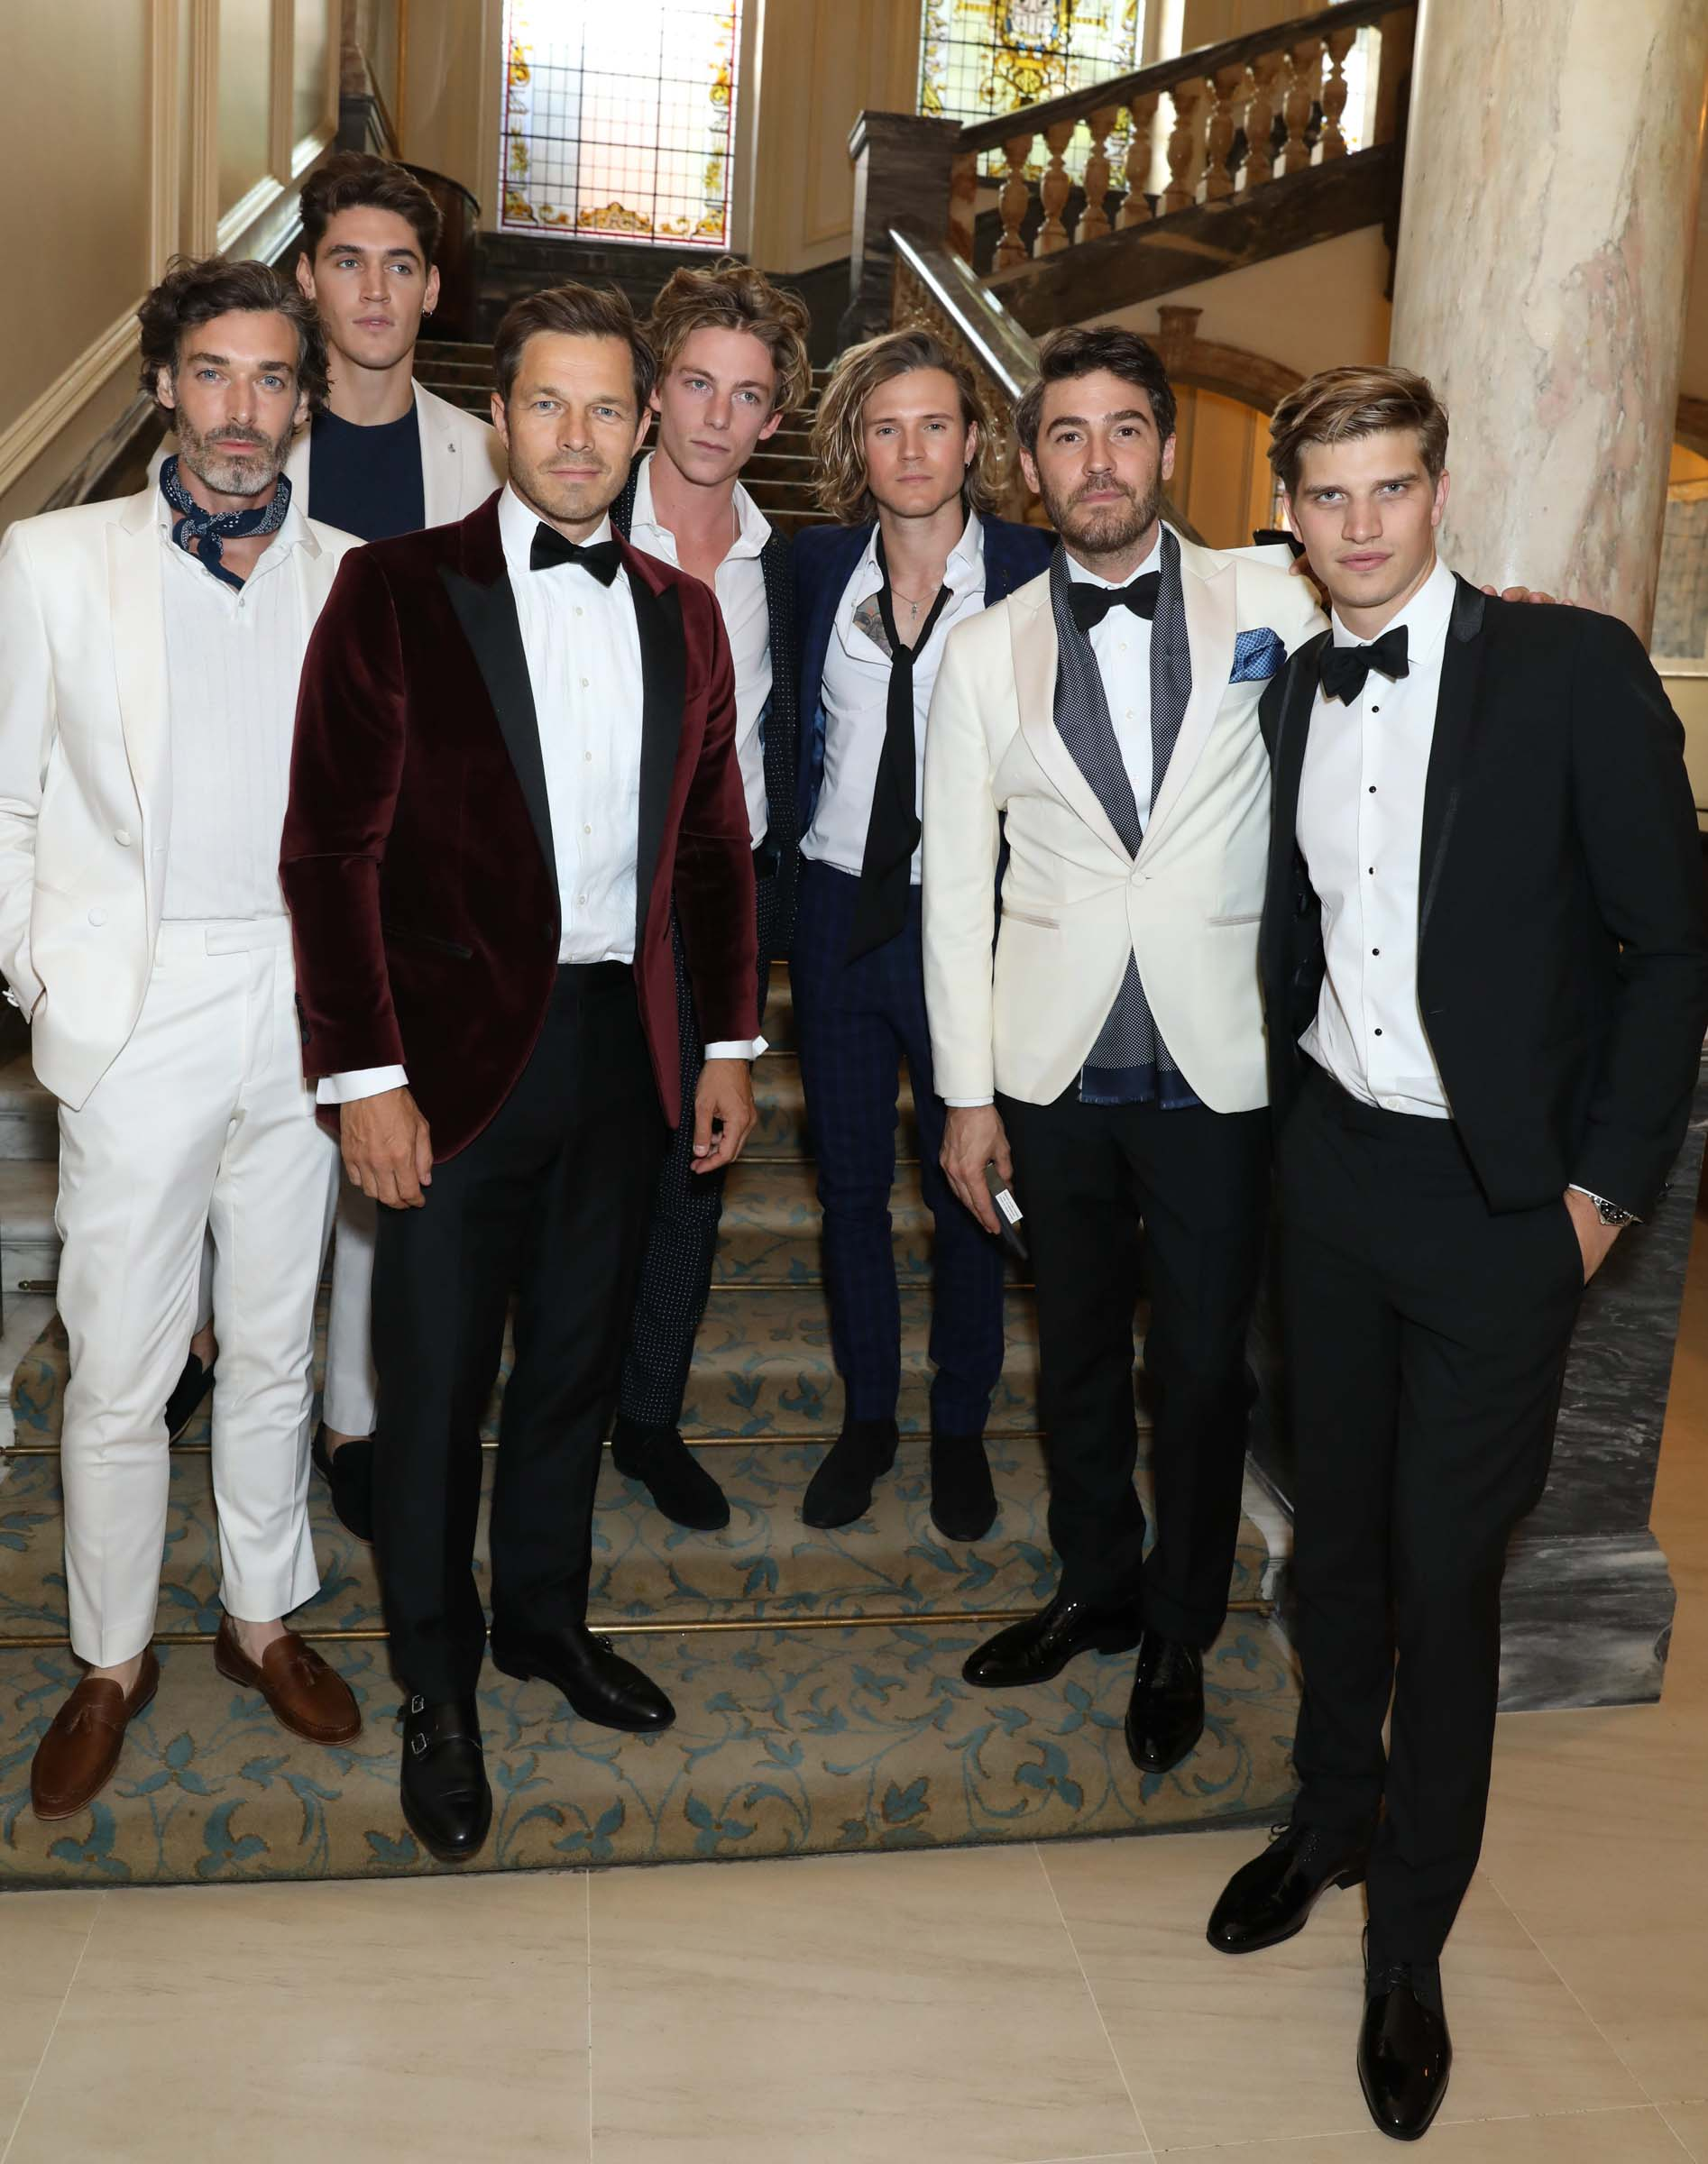 One For The Boys Event SS18 (Darren Gerrish, British Fashion Council)